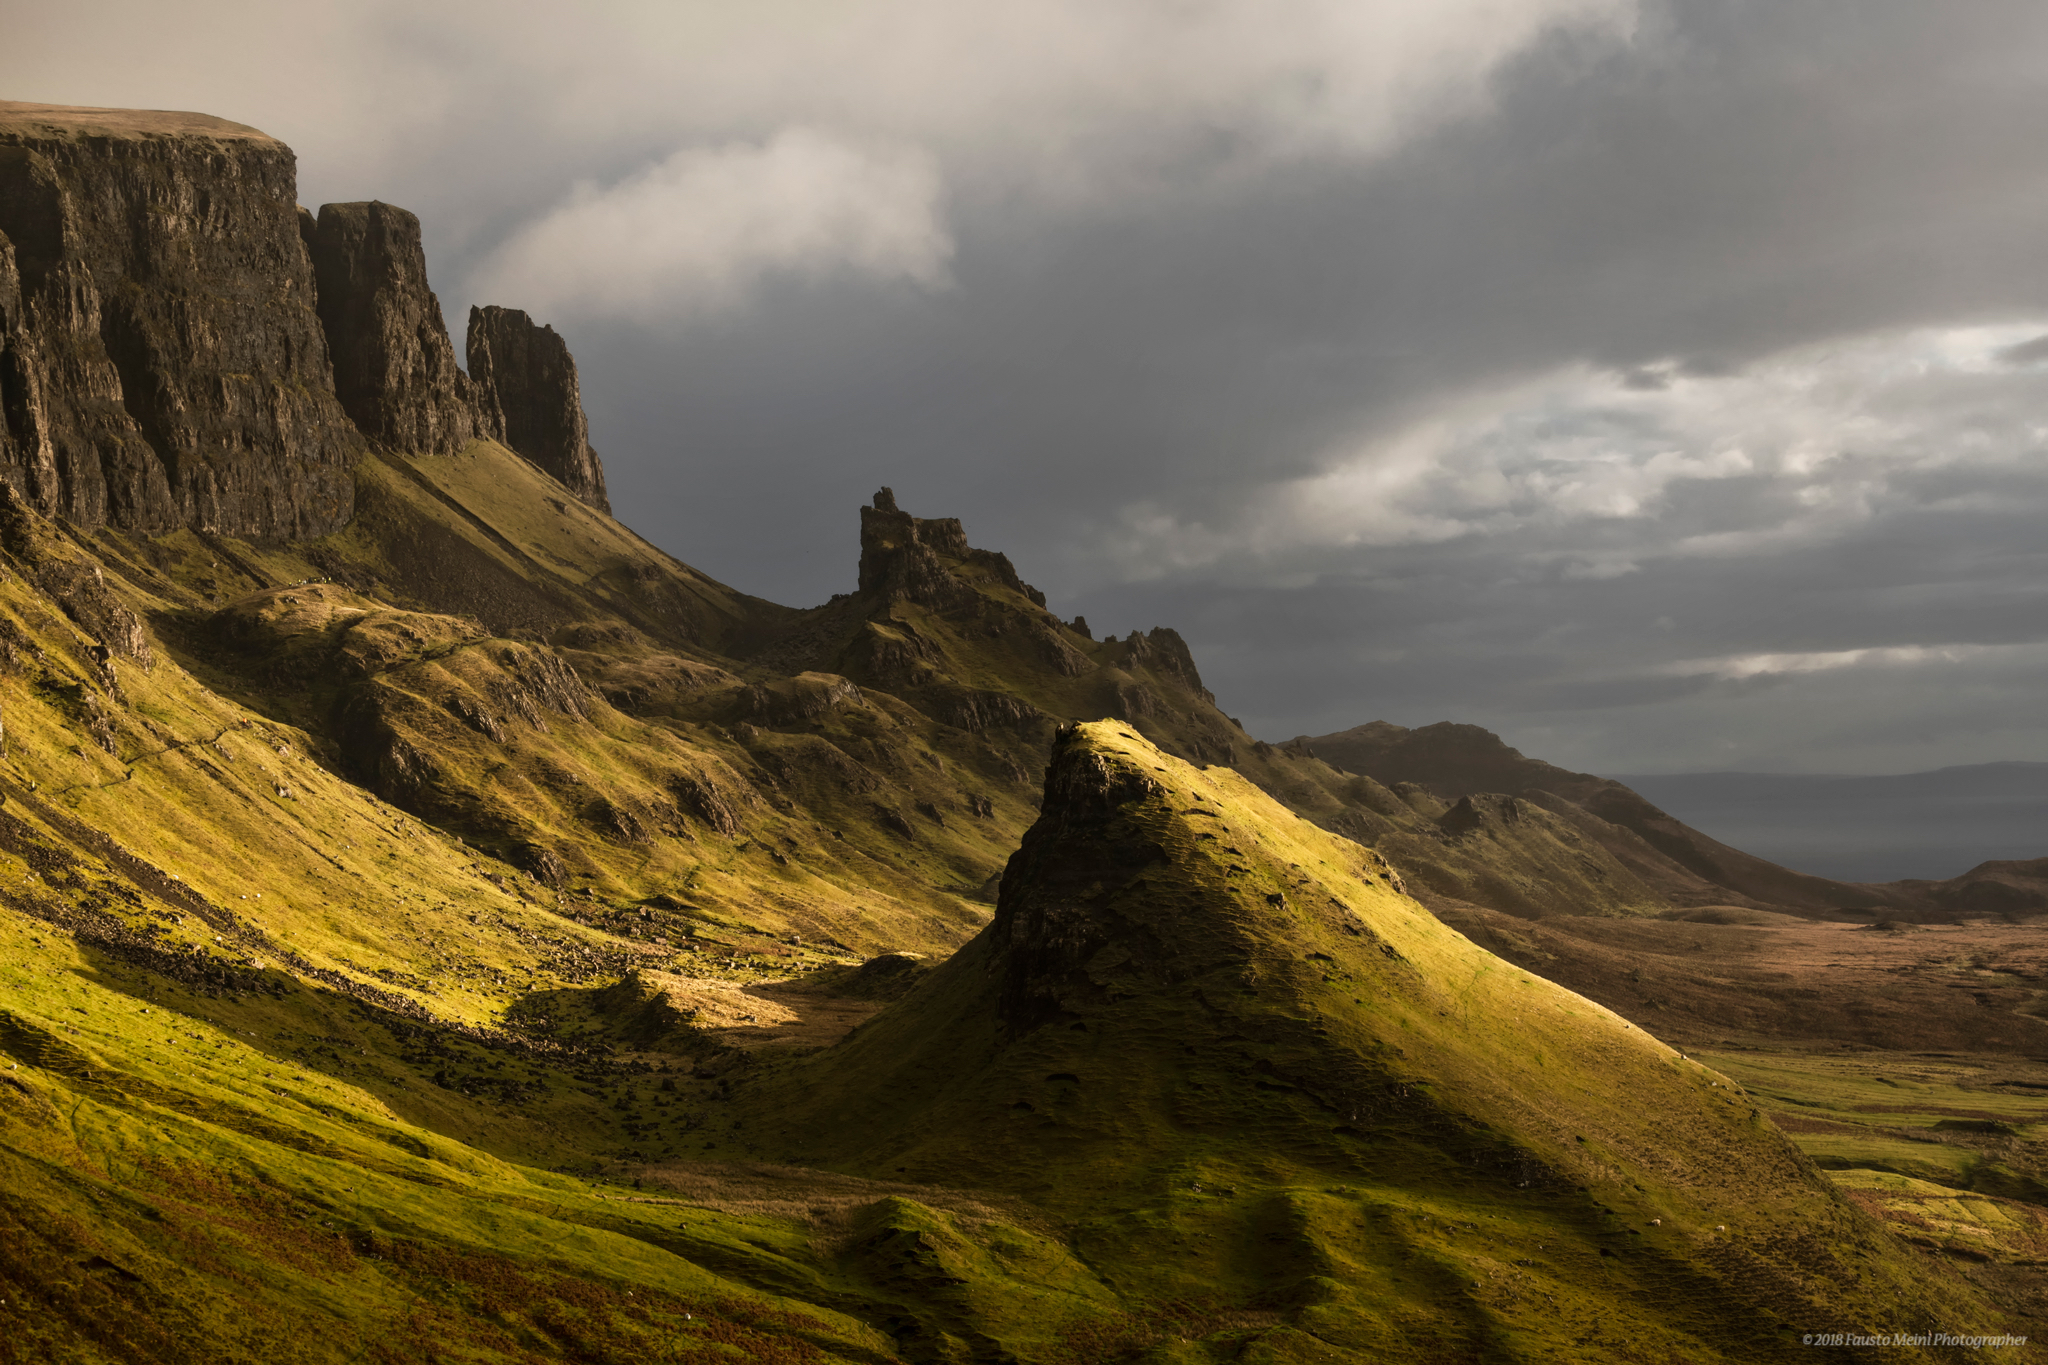 The greatness of the Highlands...